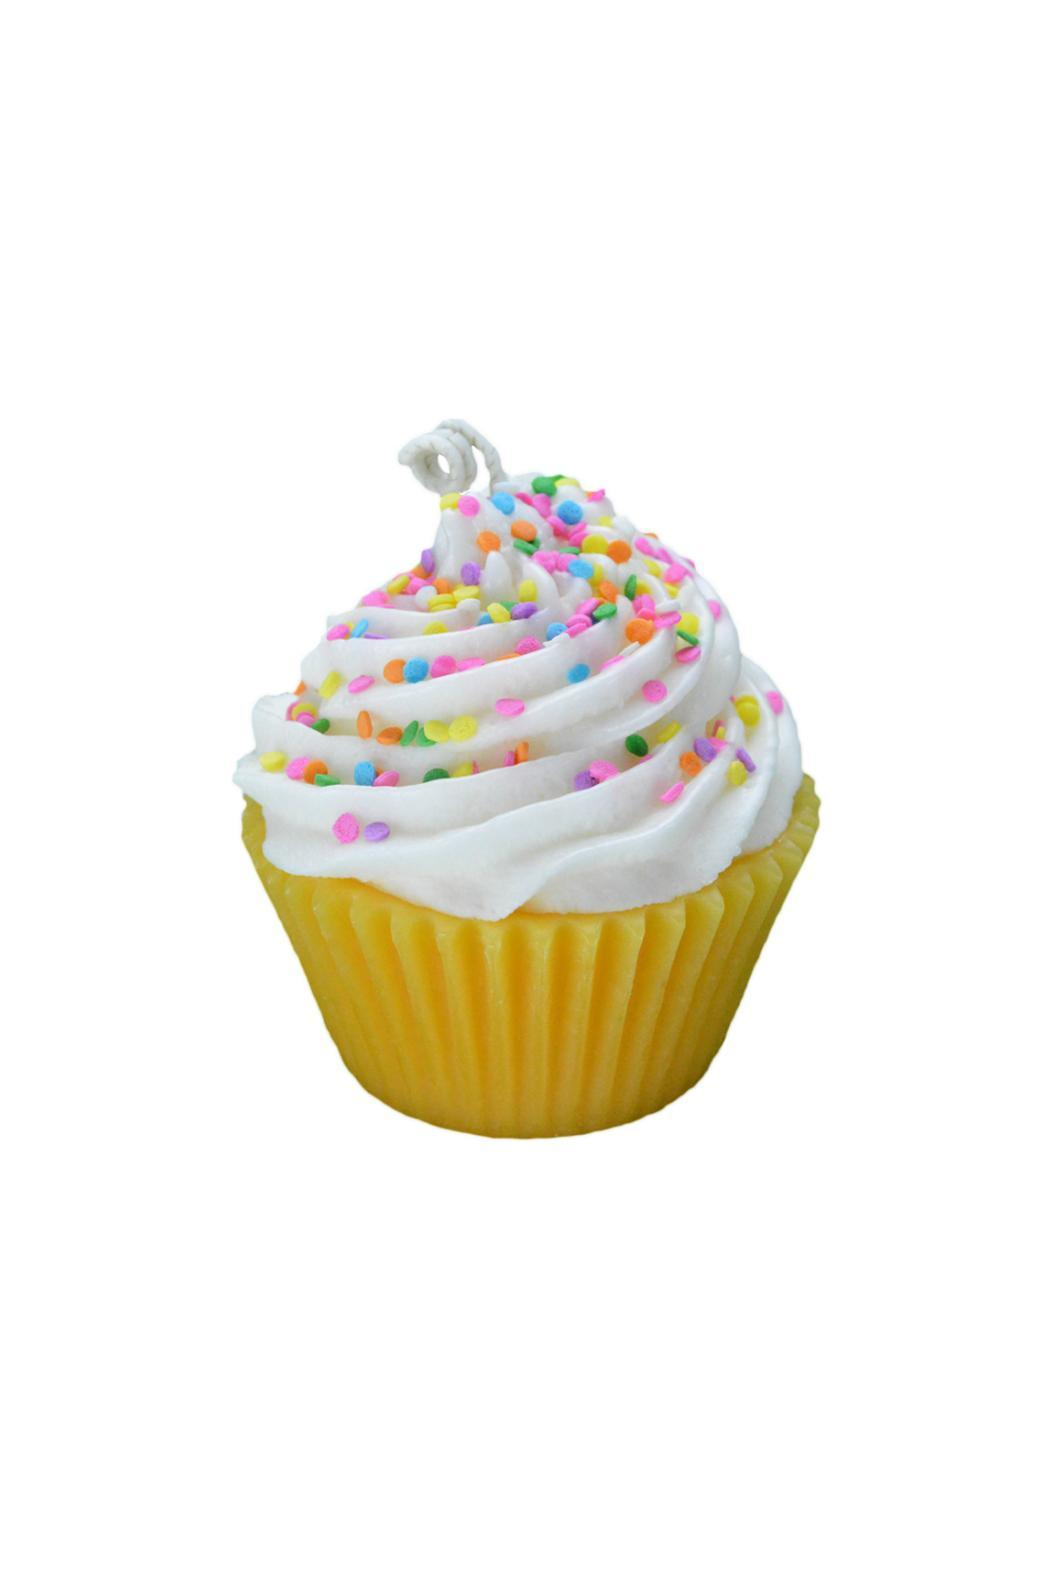 Stella Star Soaps Candles Birthday Cupcake Candle